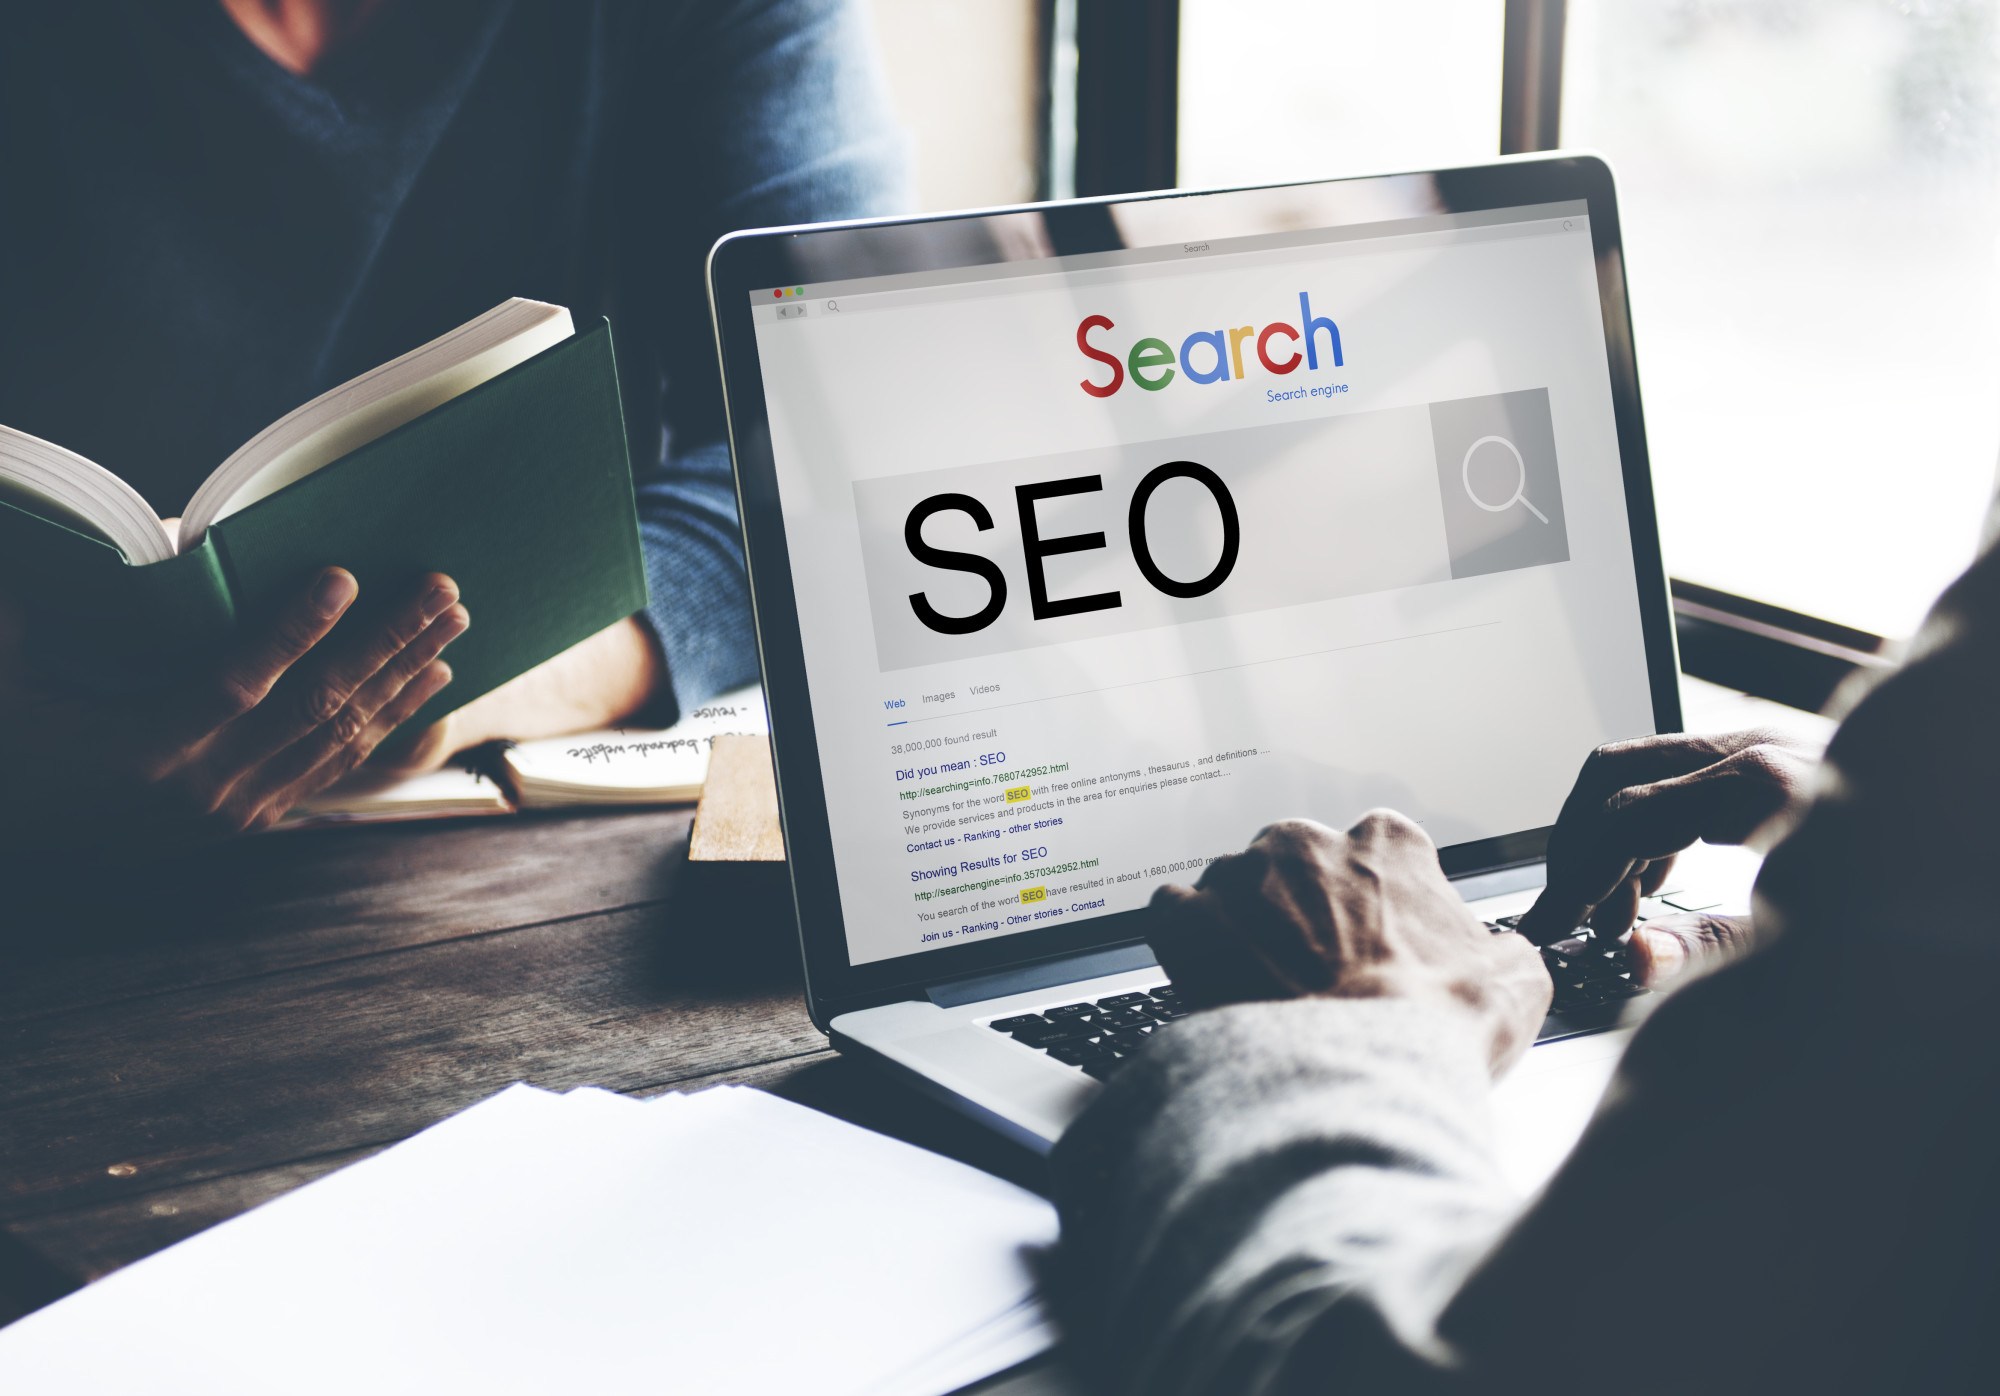 SEO Search Engine Optimization Business Marketing